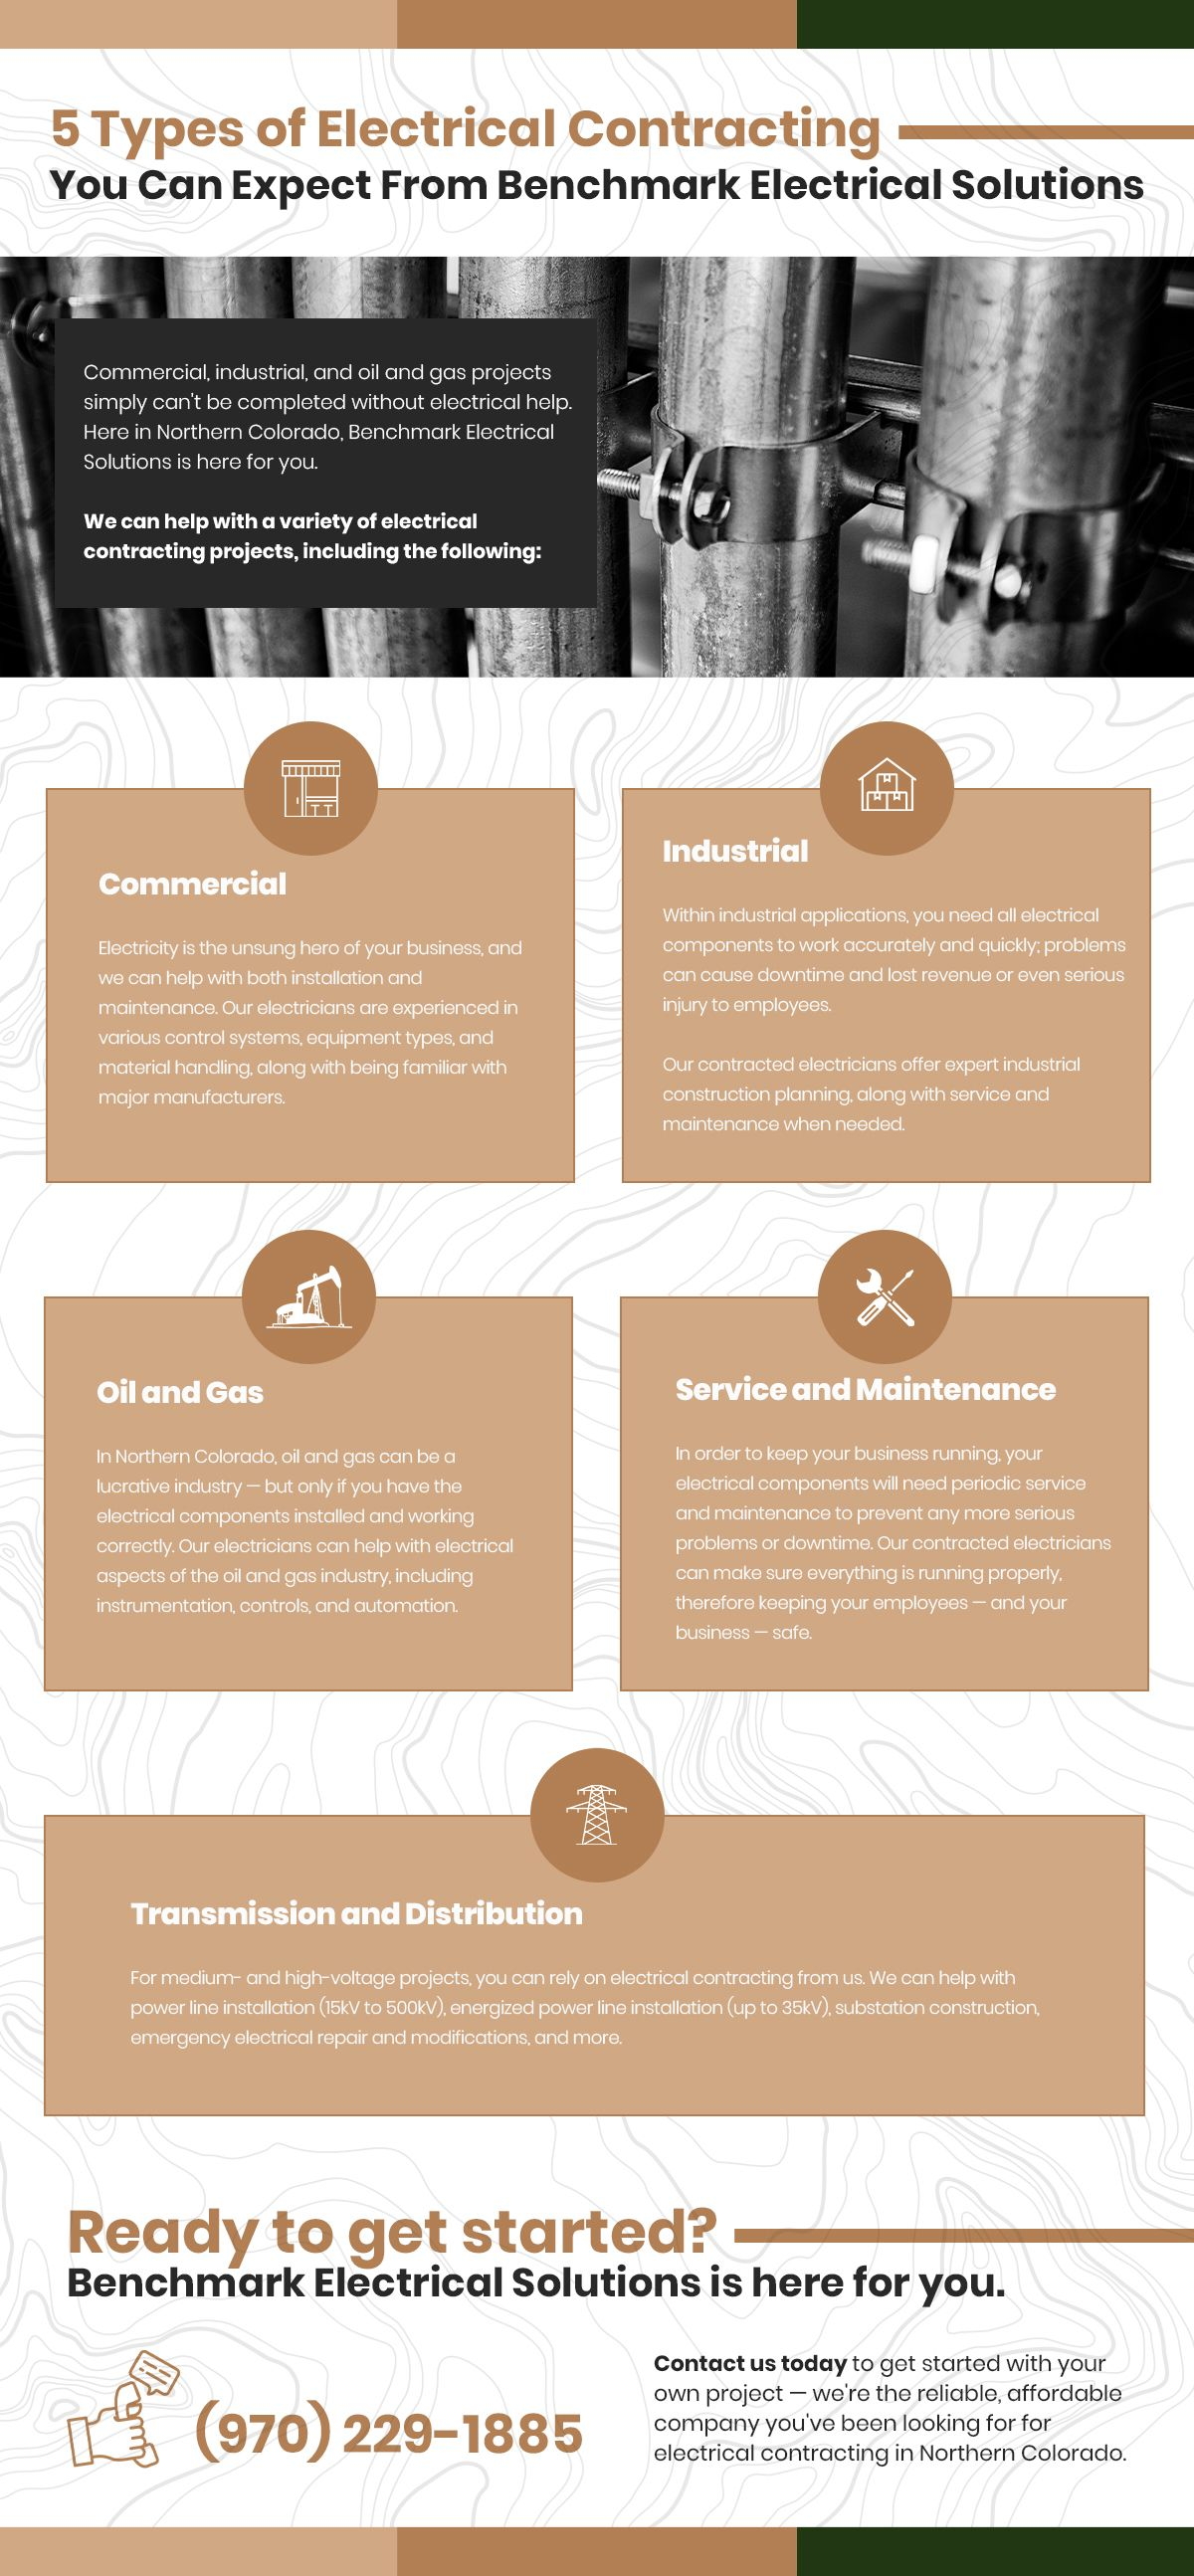 infographic-5-Types-of-Electrical-Contracting-5df273920114c.jpg